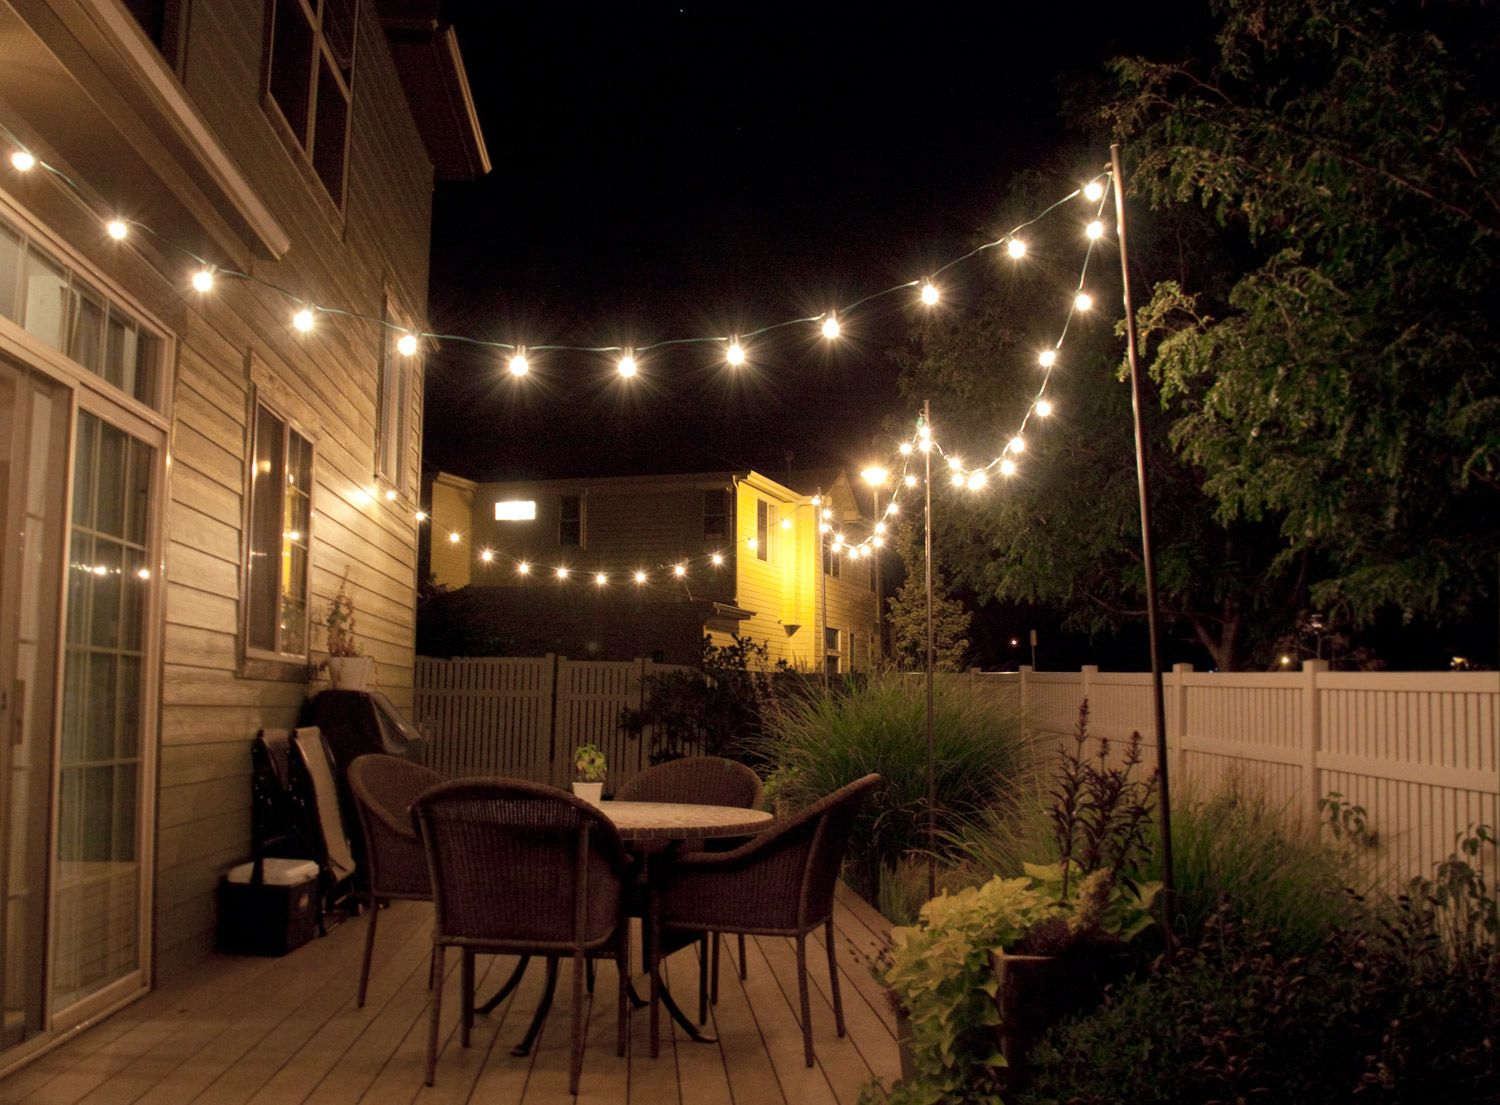 How To Make Inexpensive Poles To Hang String Lights On Caf Style Via Bright